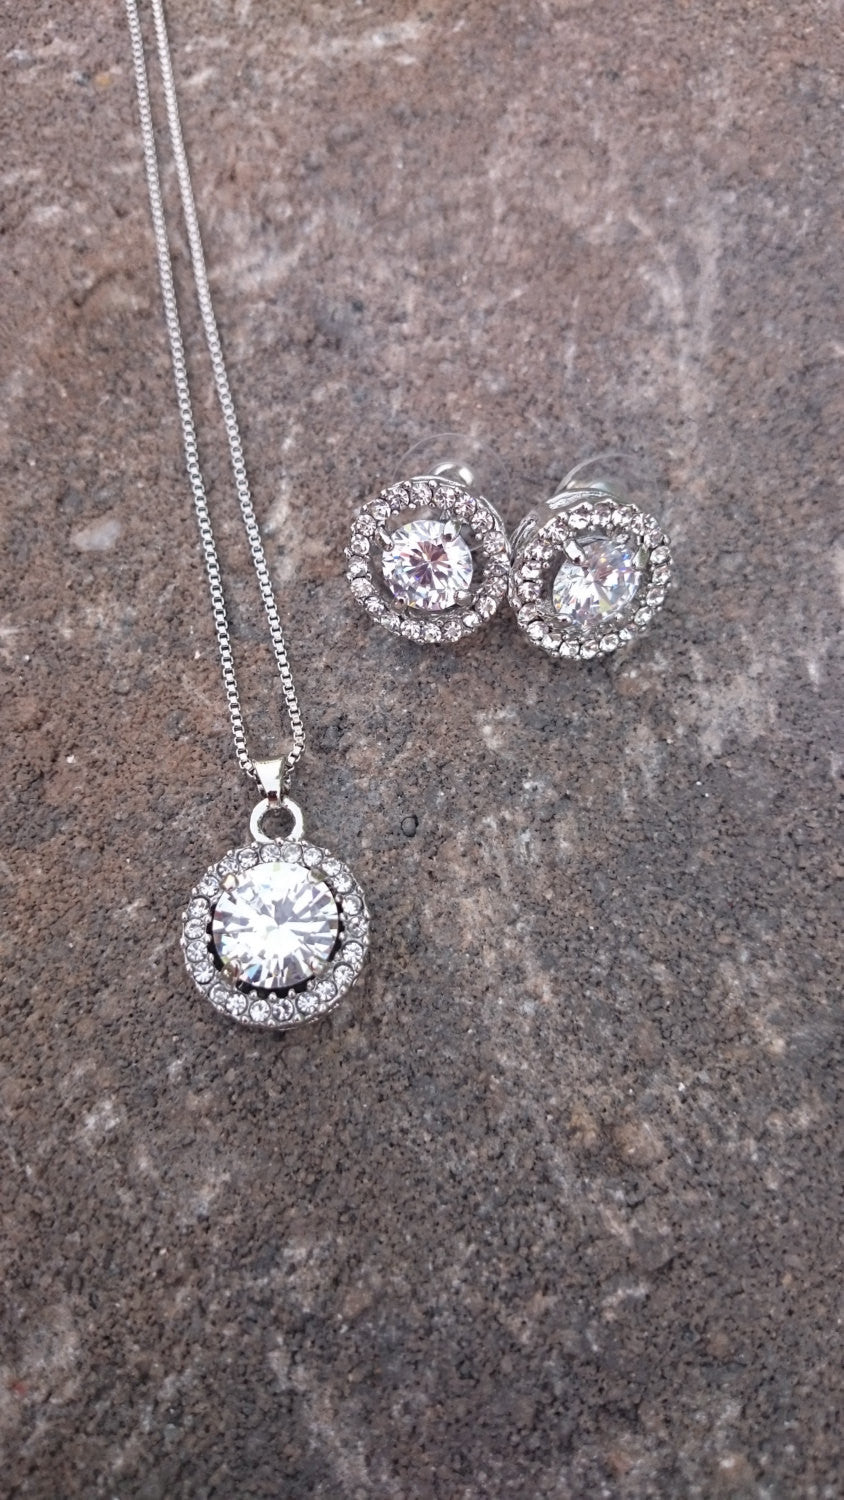 Jewelry Set, Bridesmaids Jewelry,  CZ Set, Wedding necklace, Crystal Bridal, Necklace earrings, Wedding jewelry, Bridesmaid gift